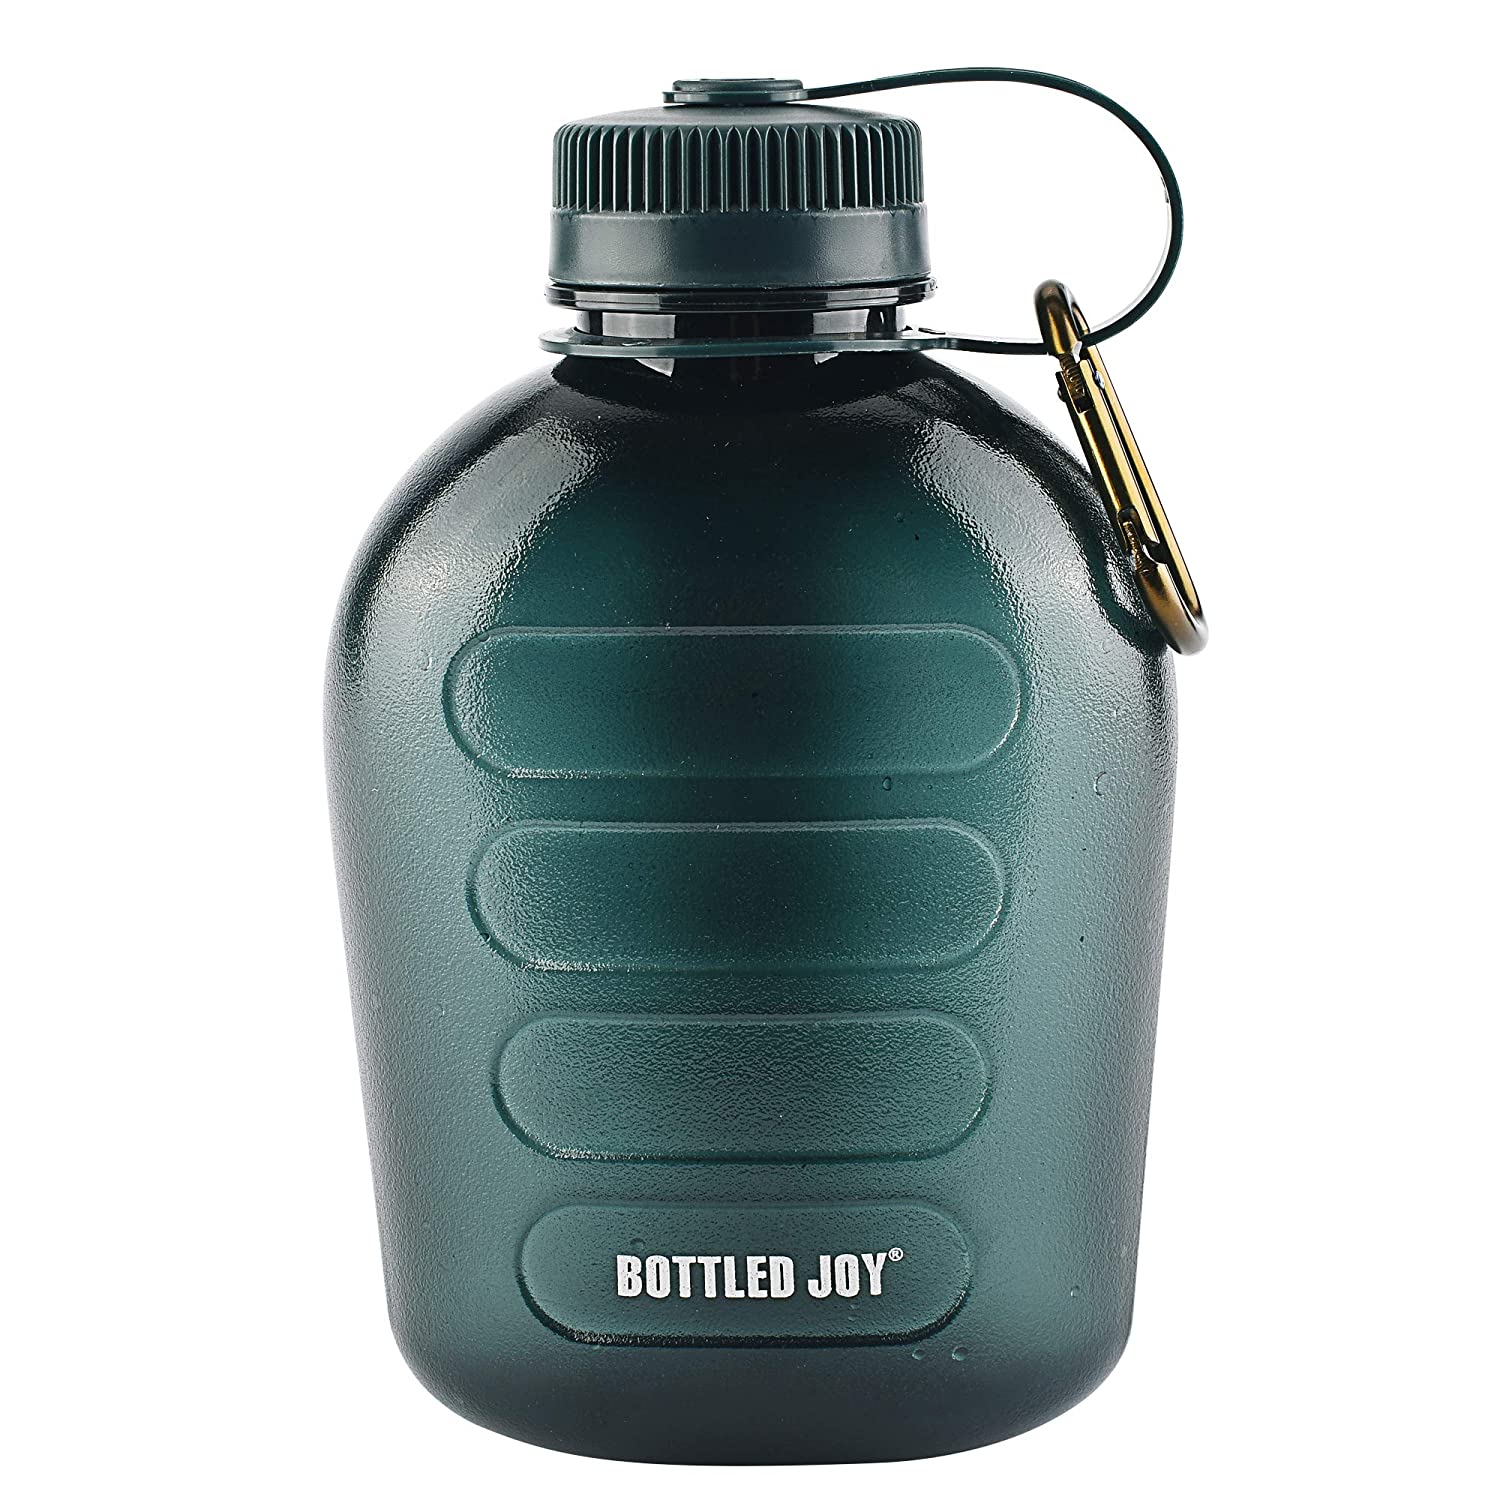 f9859d5f93 Amazon.com : BOTTLED JOY Military Canteen Water Bottle, Plastic Tritan  Sports Water Bottle Portable with Strap for Hiking Camping, 1 Quart :  Sports & ...